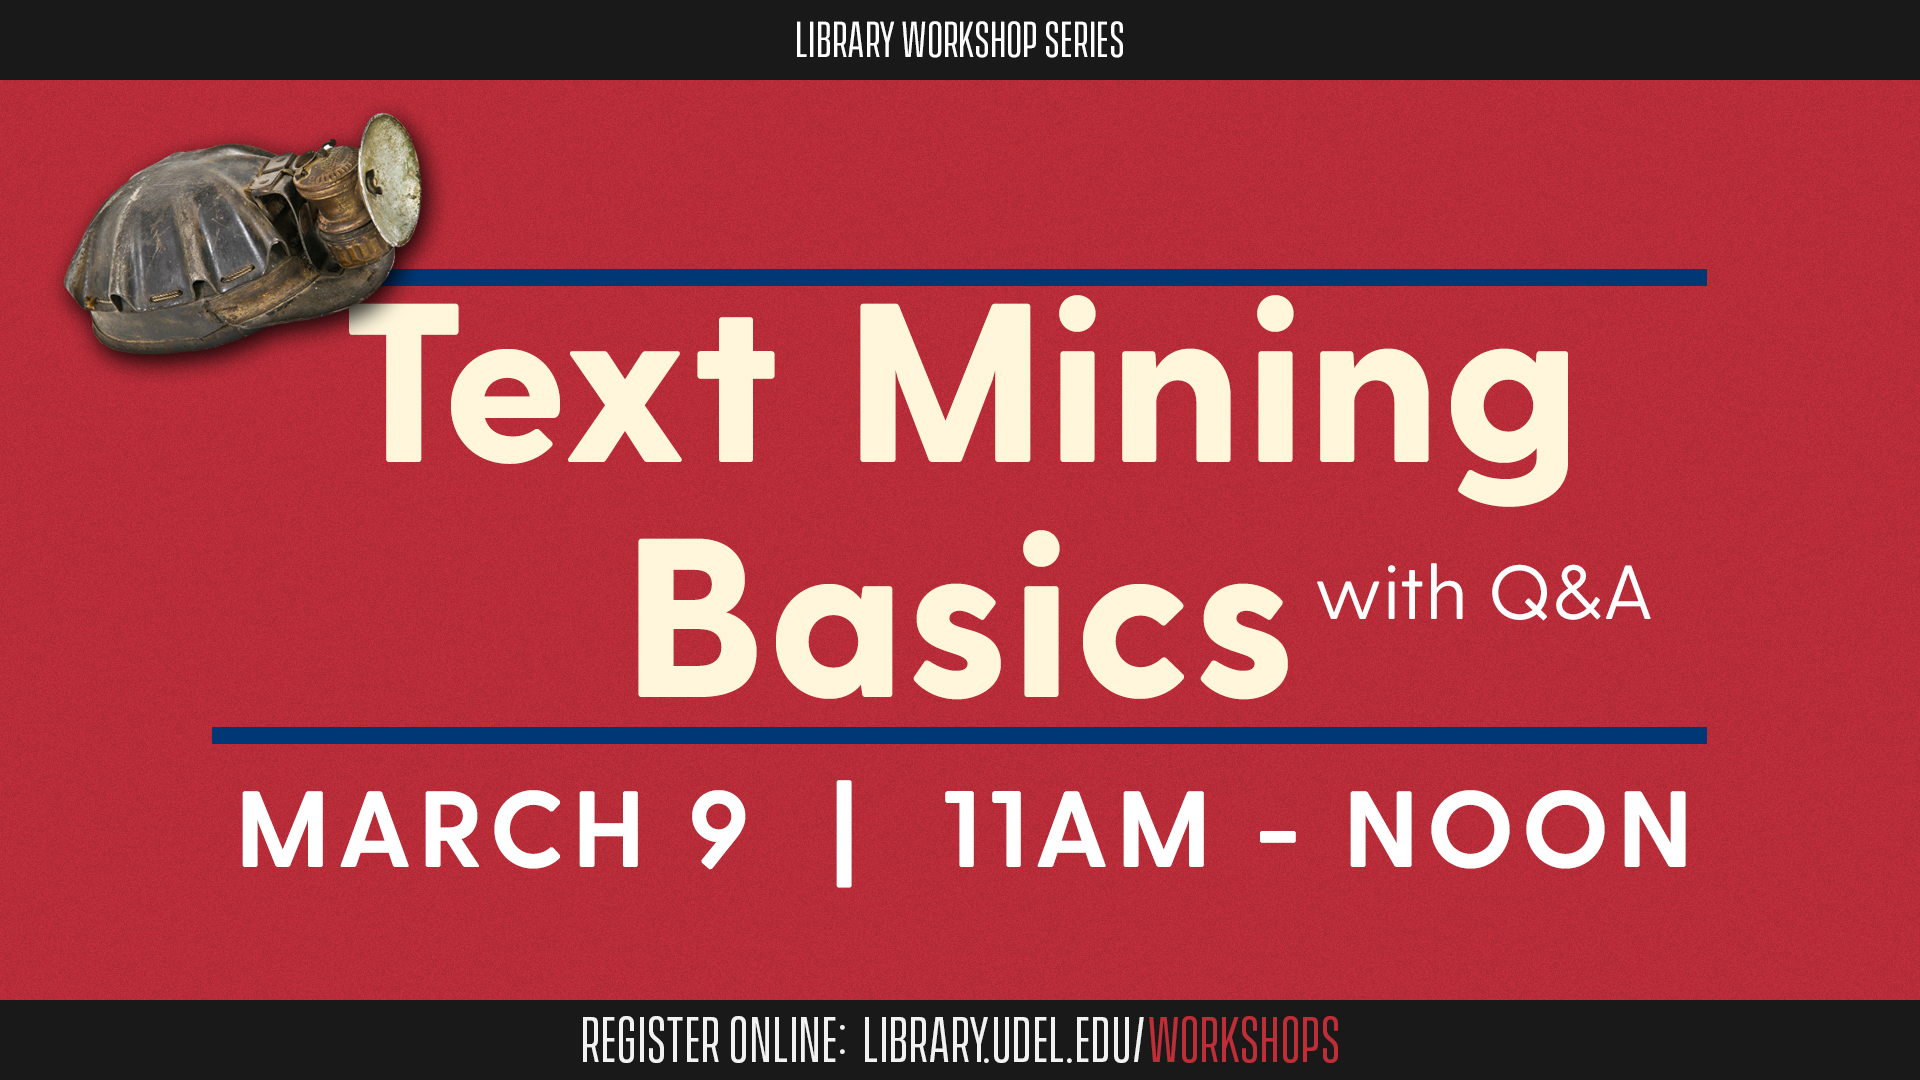 Text Mining Basics with Q&A